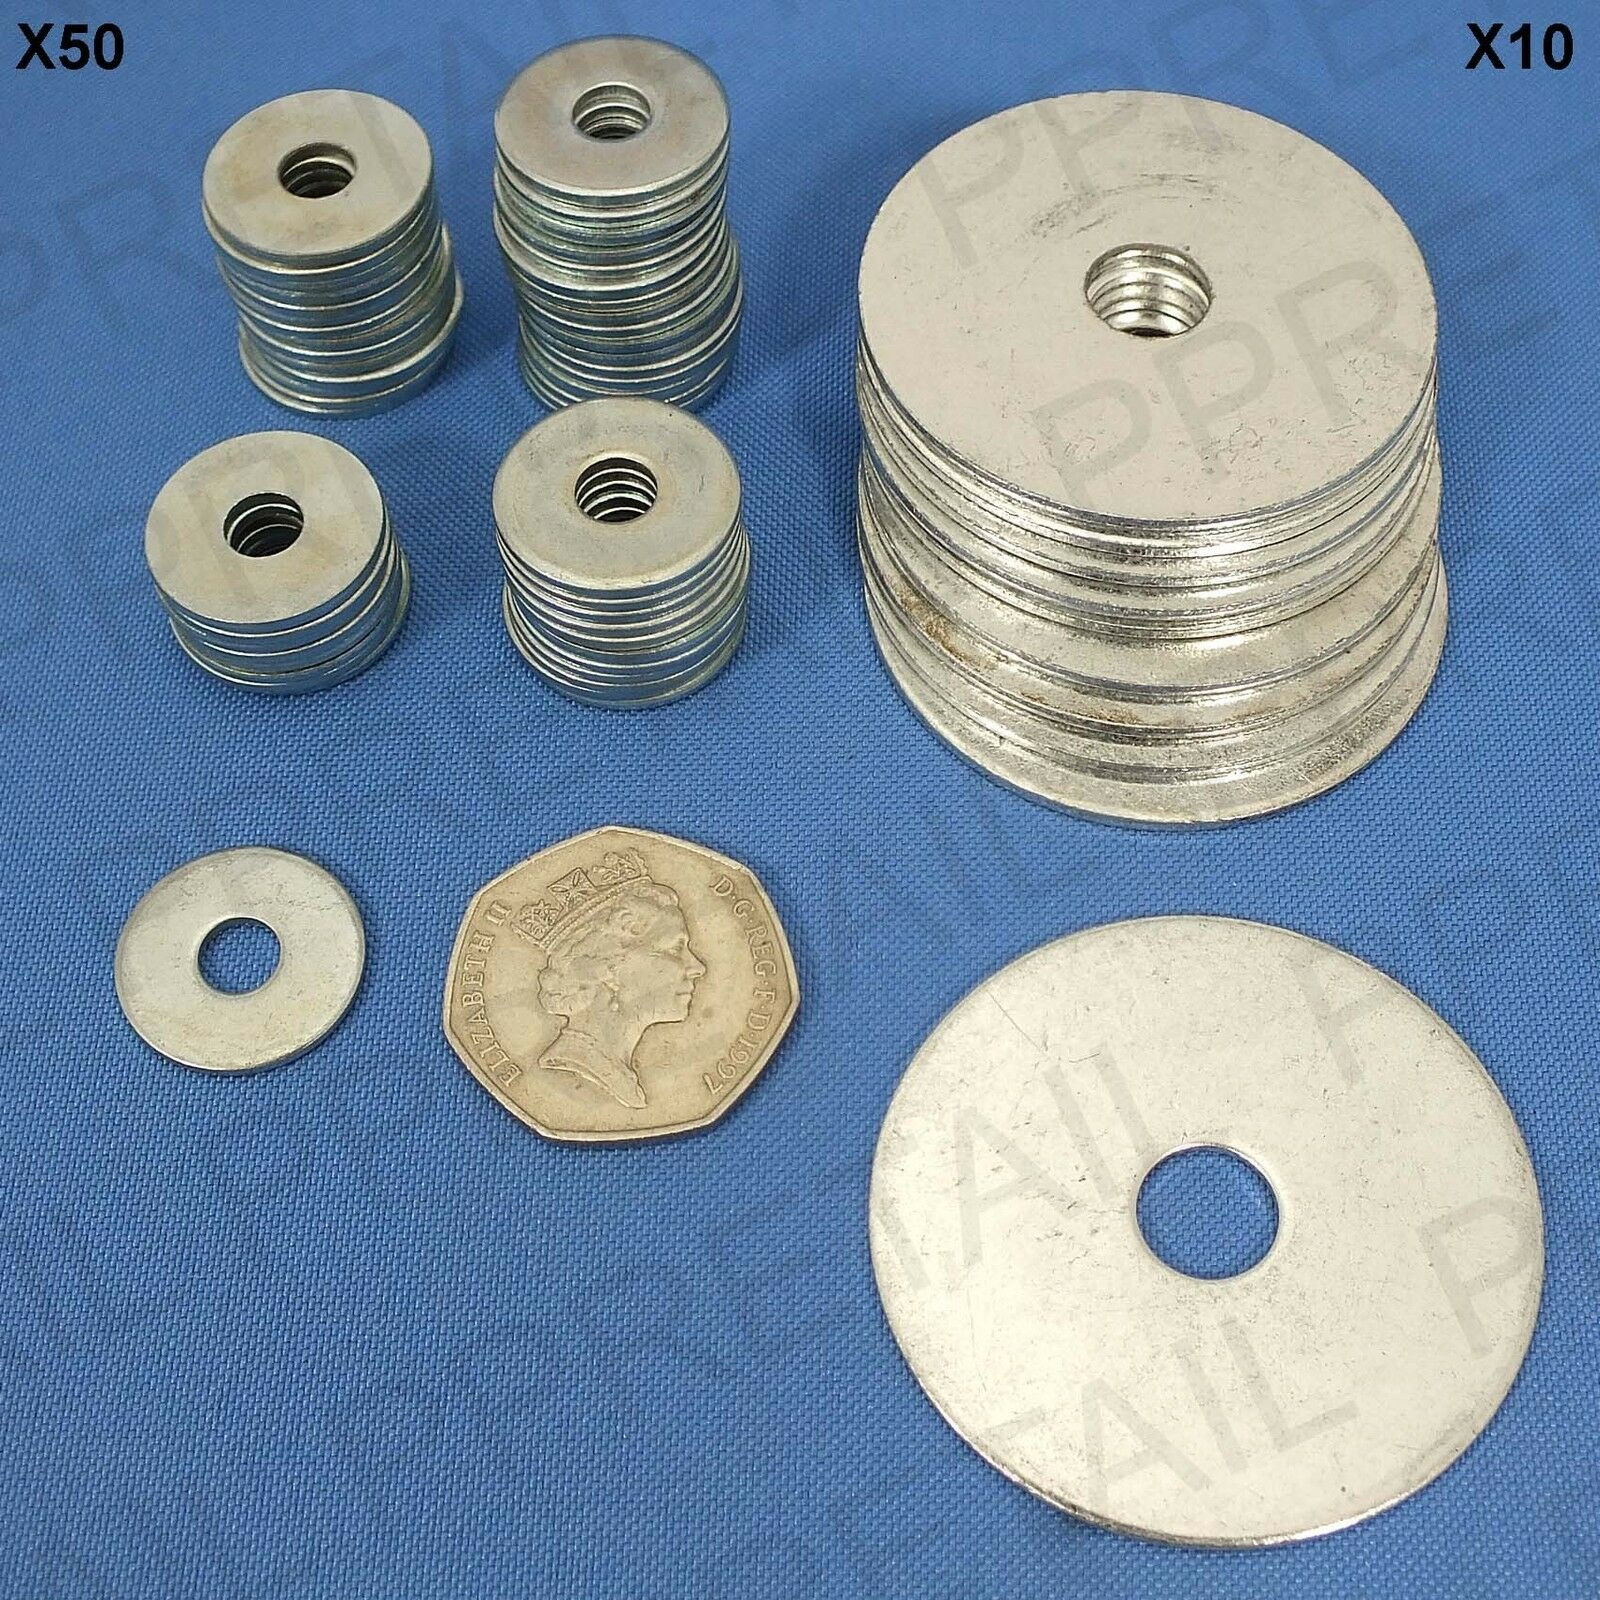 Large Washers Steel Repair Penny Washers 10x Large 50mm 50x Small 20mm Wide